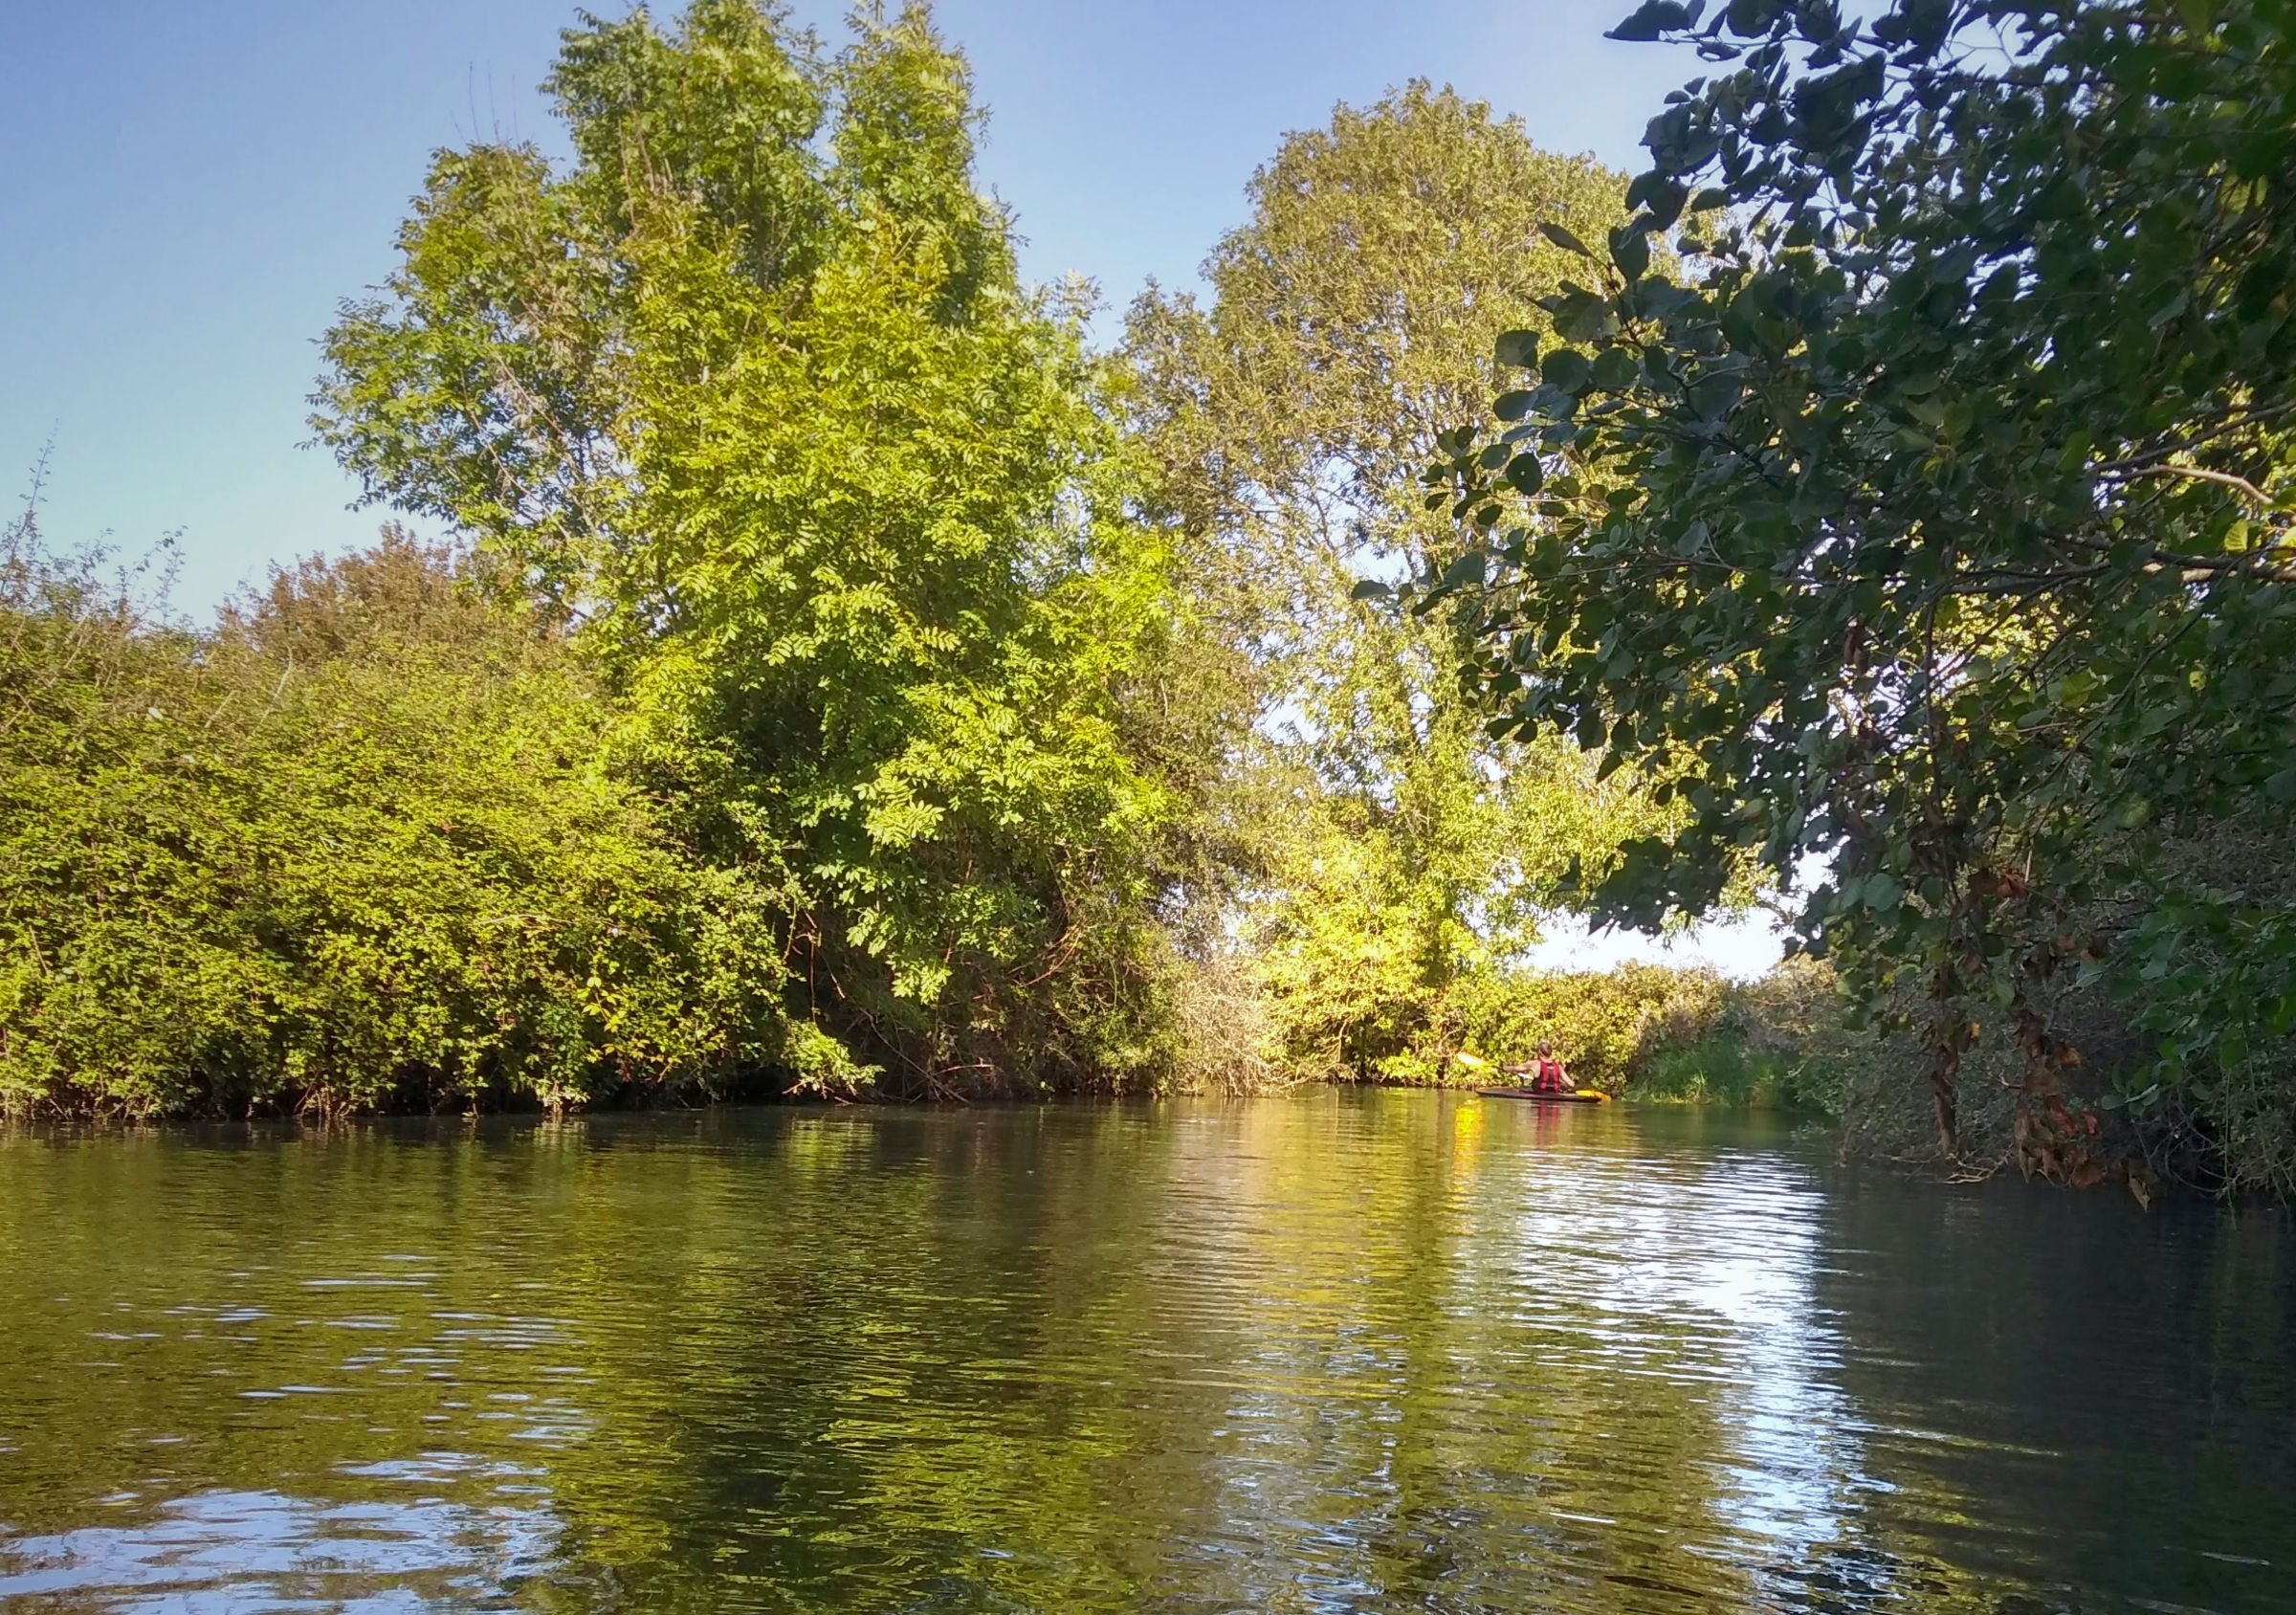 barcombe mills, river ouse, barcombe, paddling on the ouse, river walk